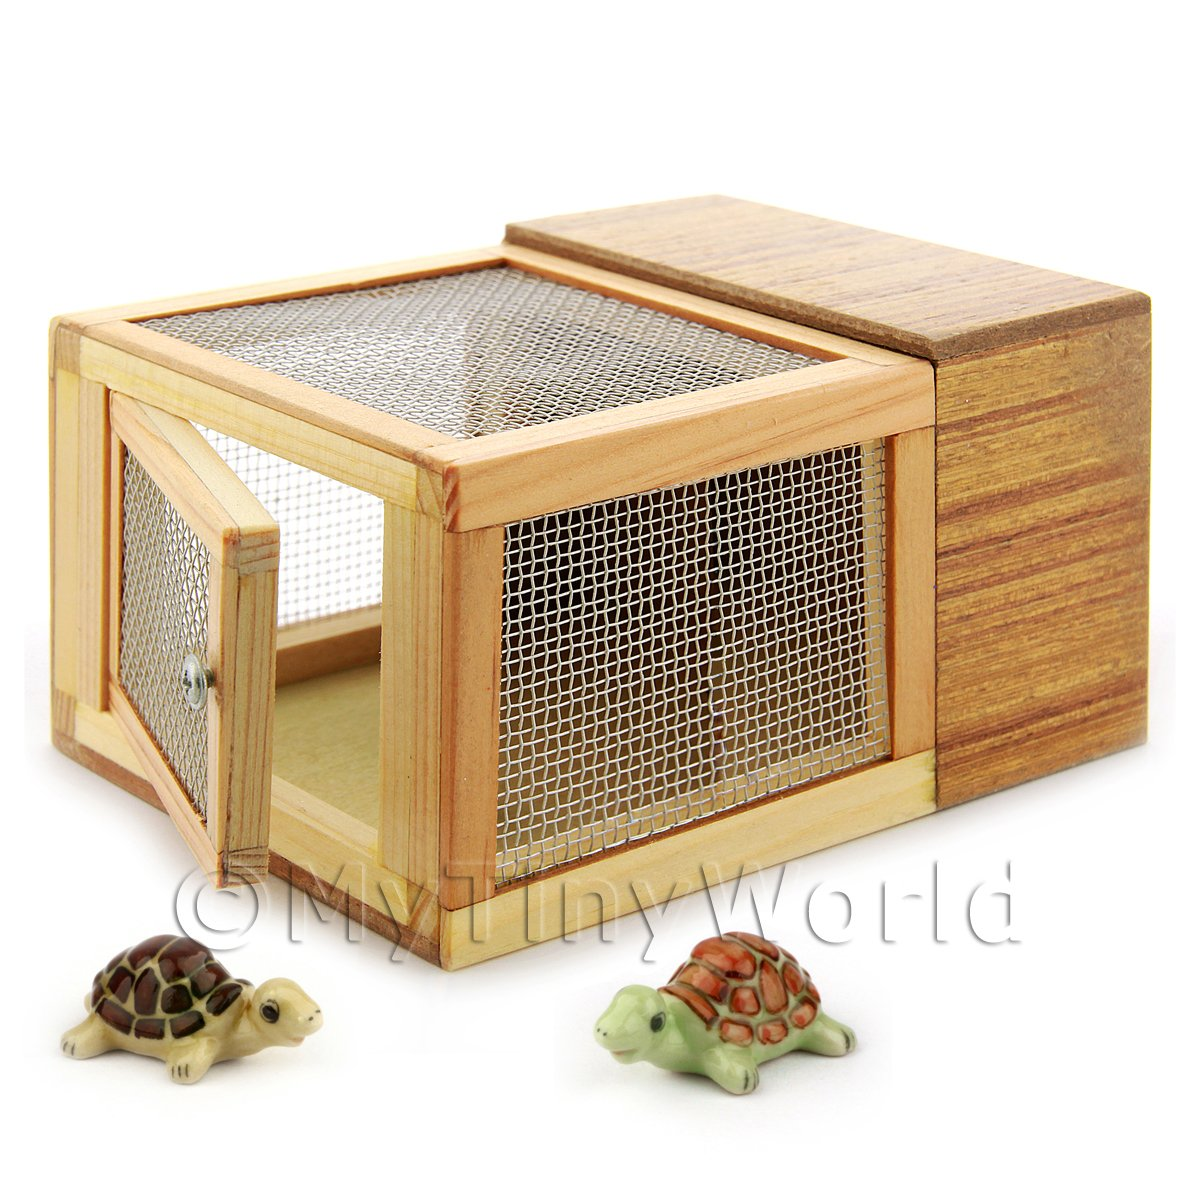 Dolls House Miniature Wooden Hutch With Two Tortoises